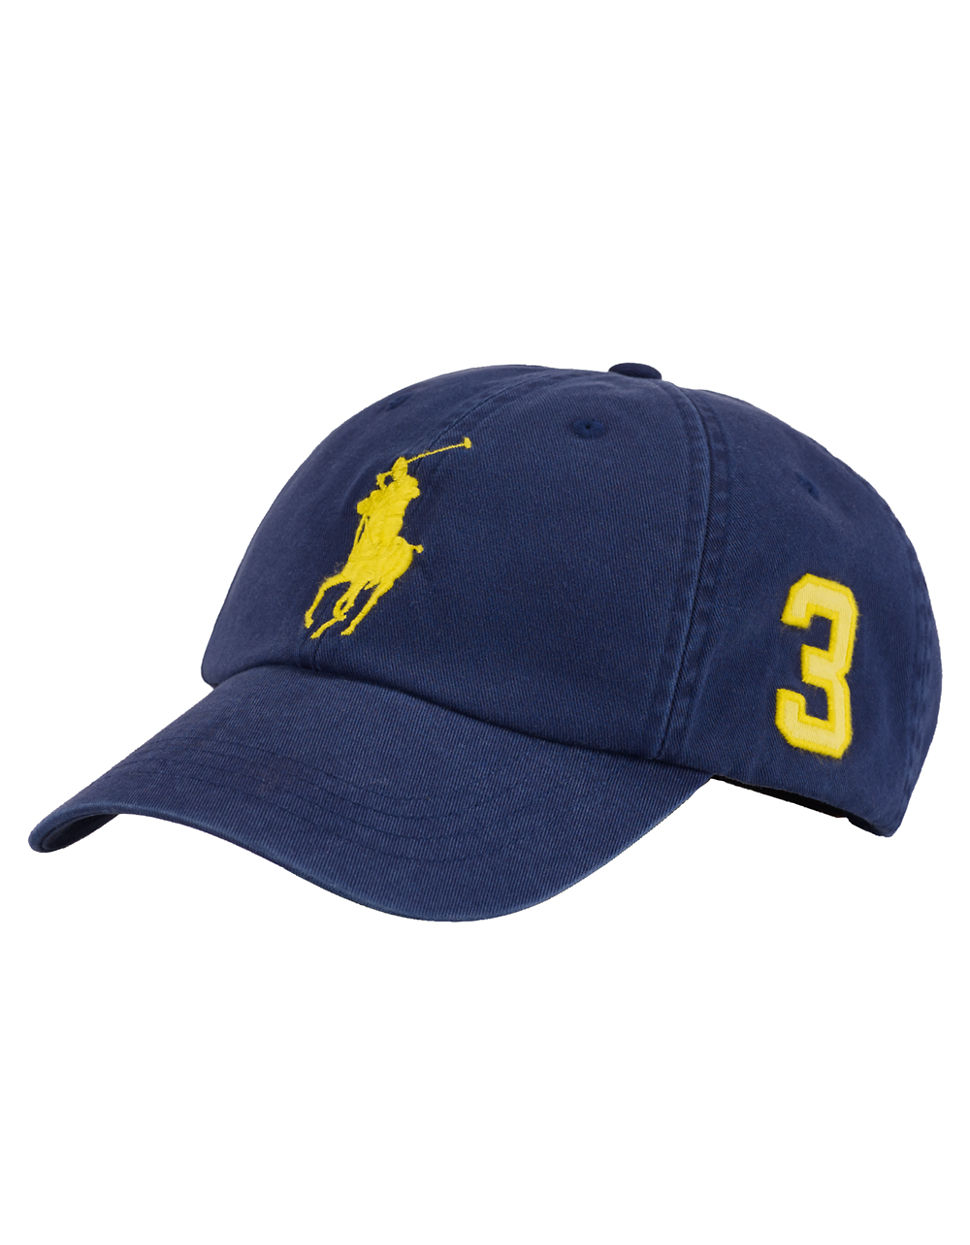 polo ralph lauren classic chino sports cap in blue for men navy lemon. Black Bedroom Furniture Sets. Home Design Ideas